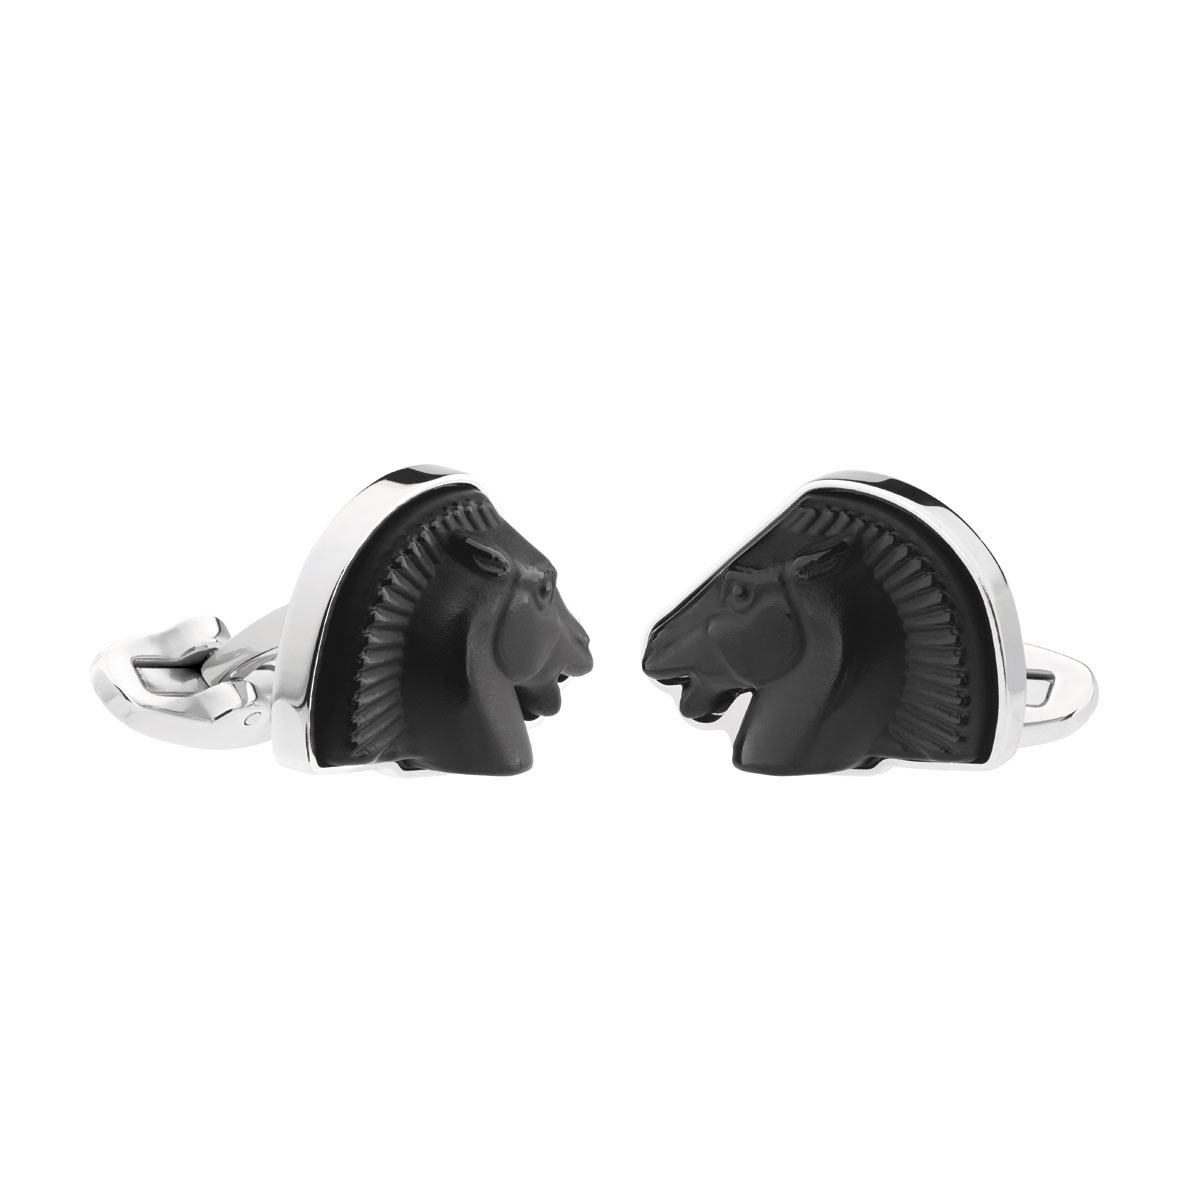 Lalique Crystal Cheval Mascottes Cufflinks Pair, Black